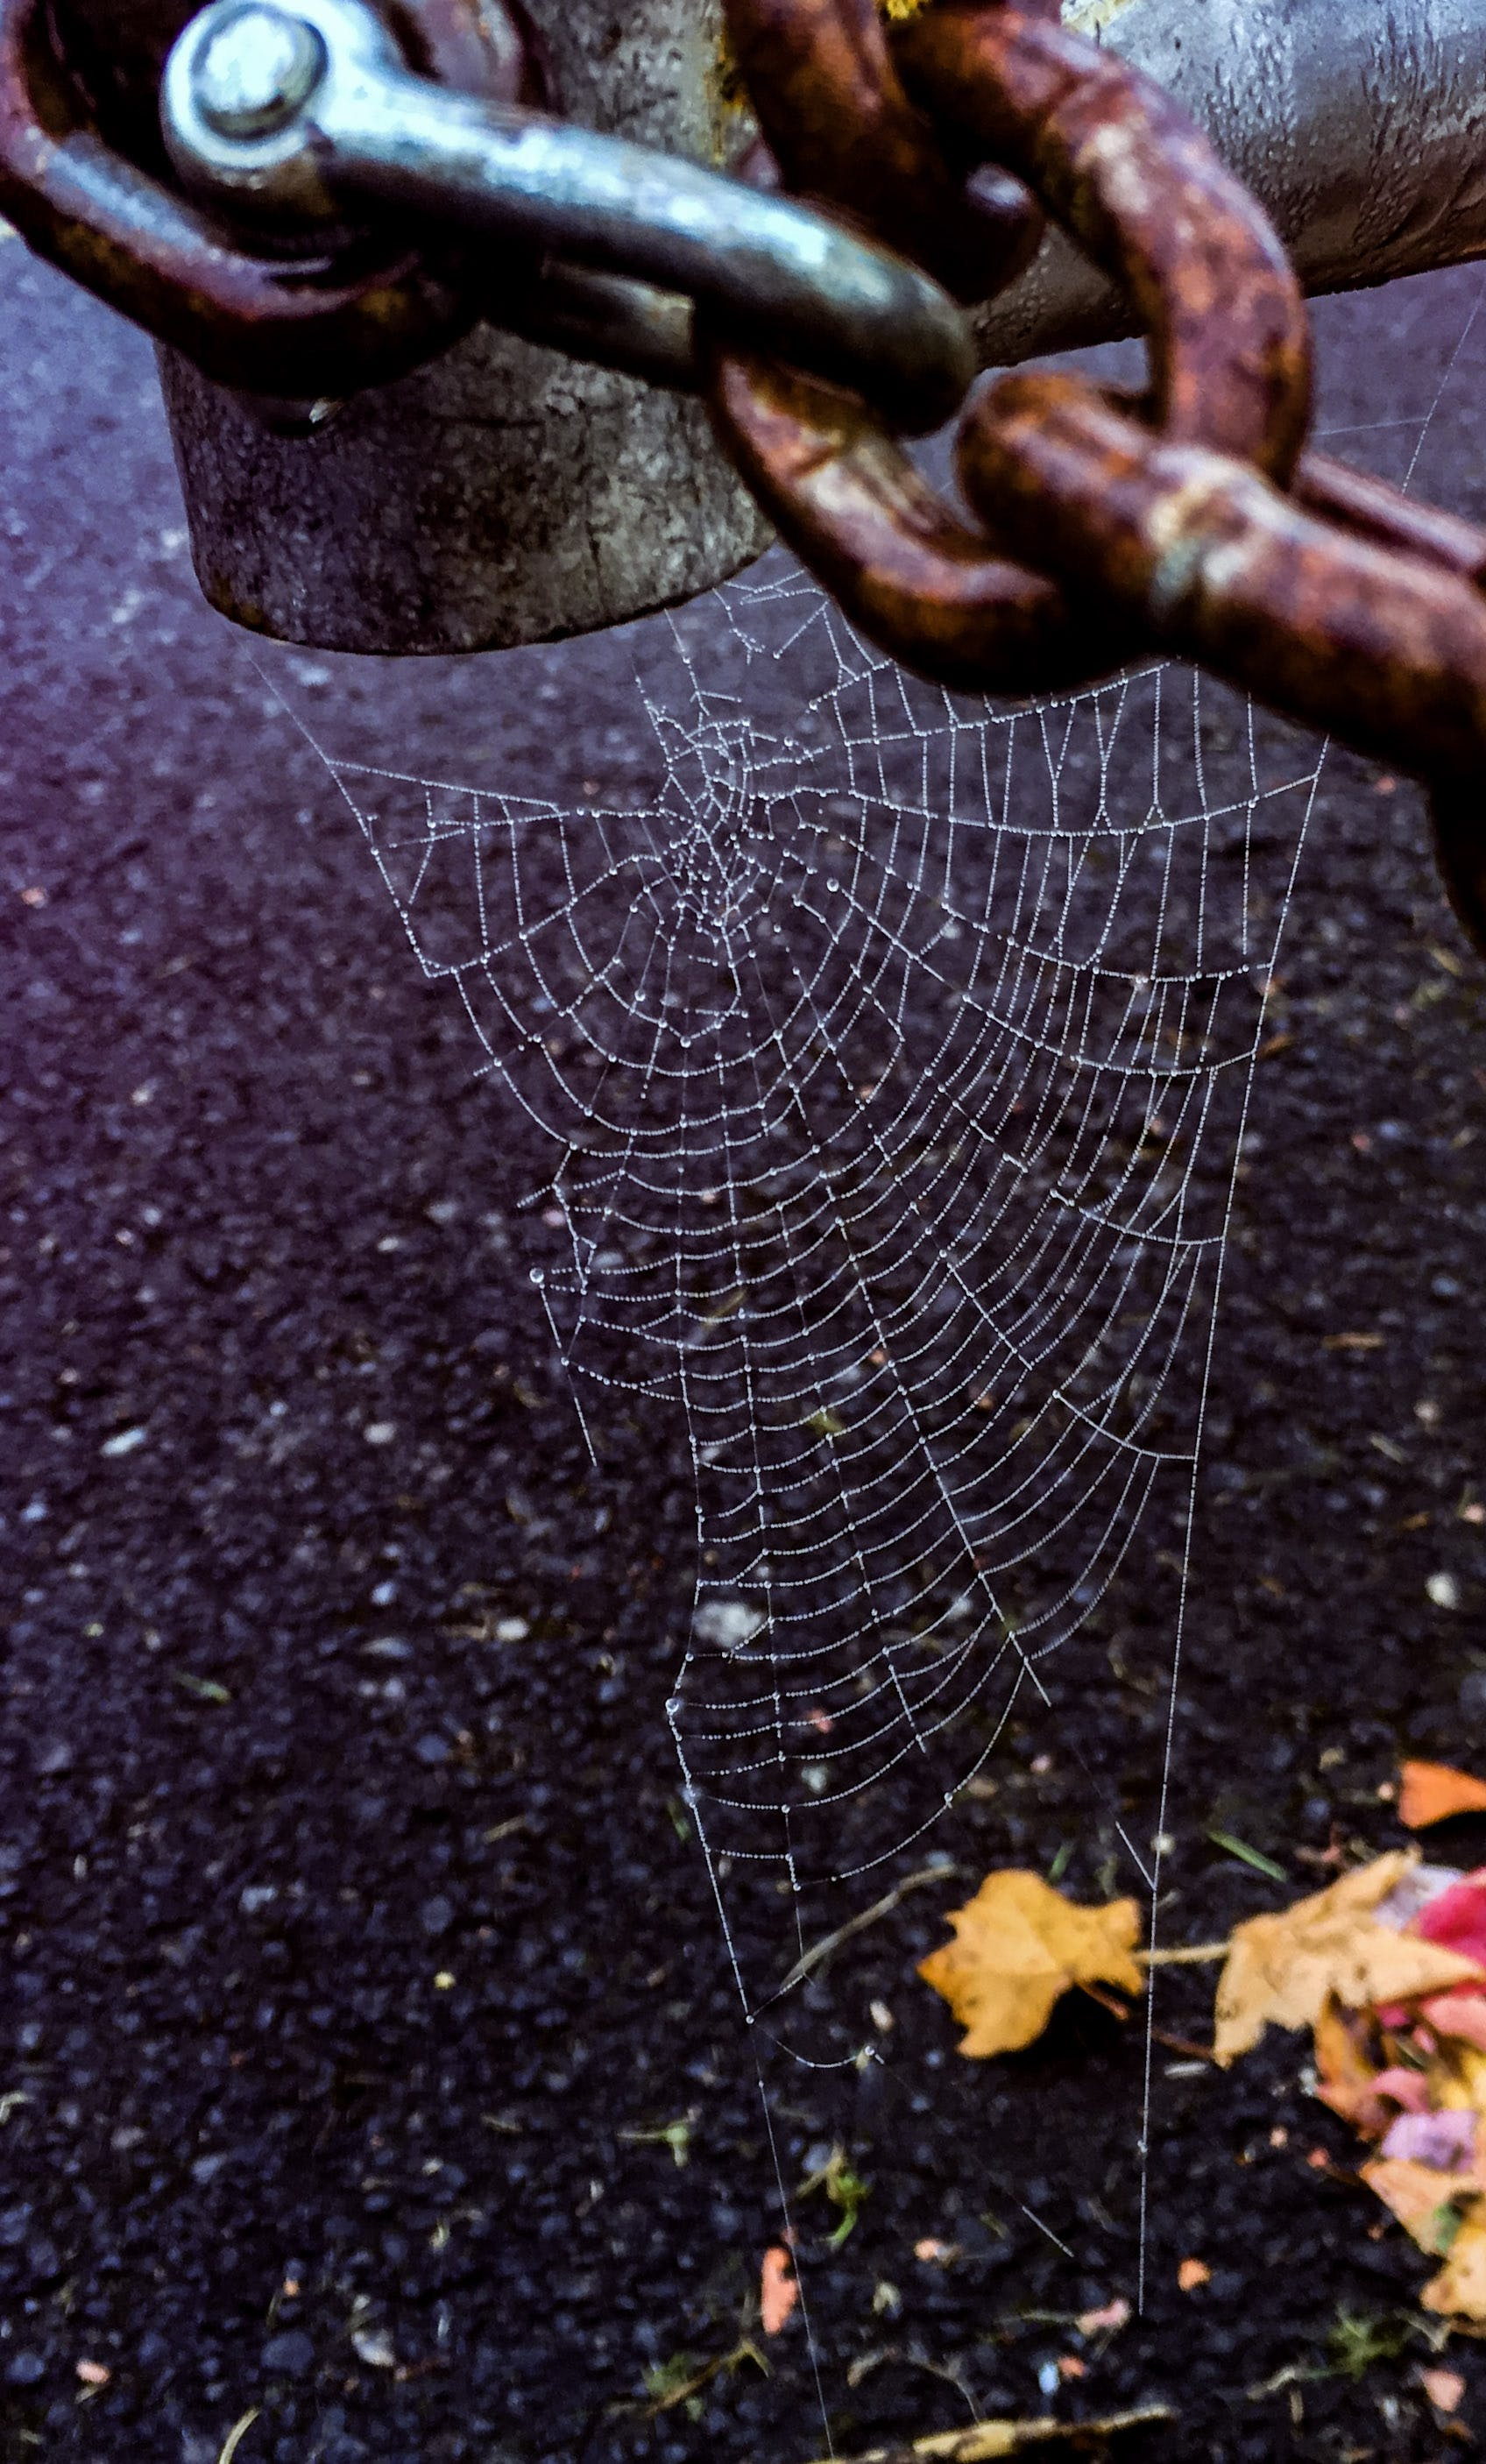 Spider Web Hanging on Chain